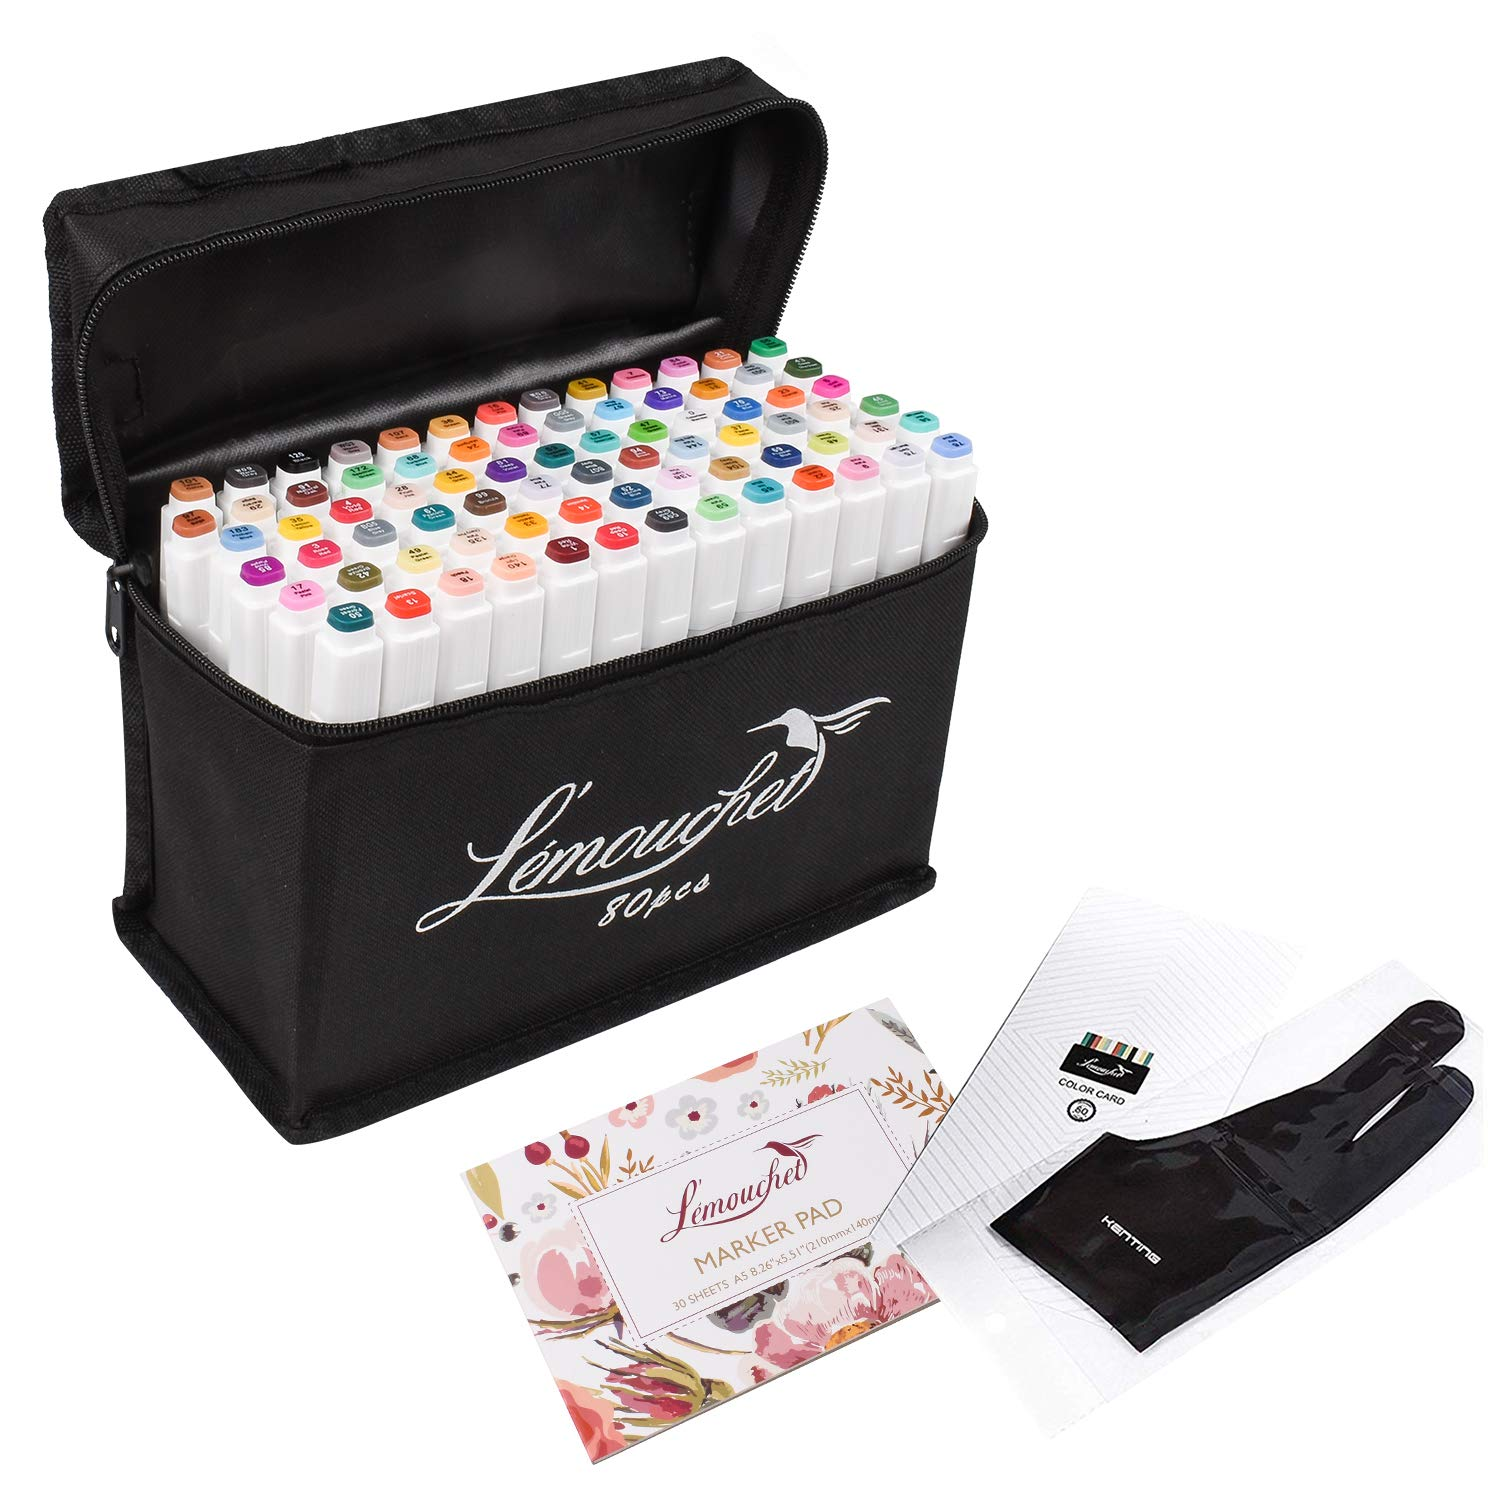 L'émouchet 80+1 Colors Art Markers, Dual Tips Alcohol Markers with Carrying Case, Artist Glove, Marker Pad and Color Card, Drawing Markers for Coloring, Marking, Drawing and More